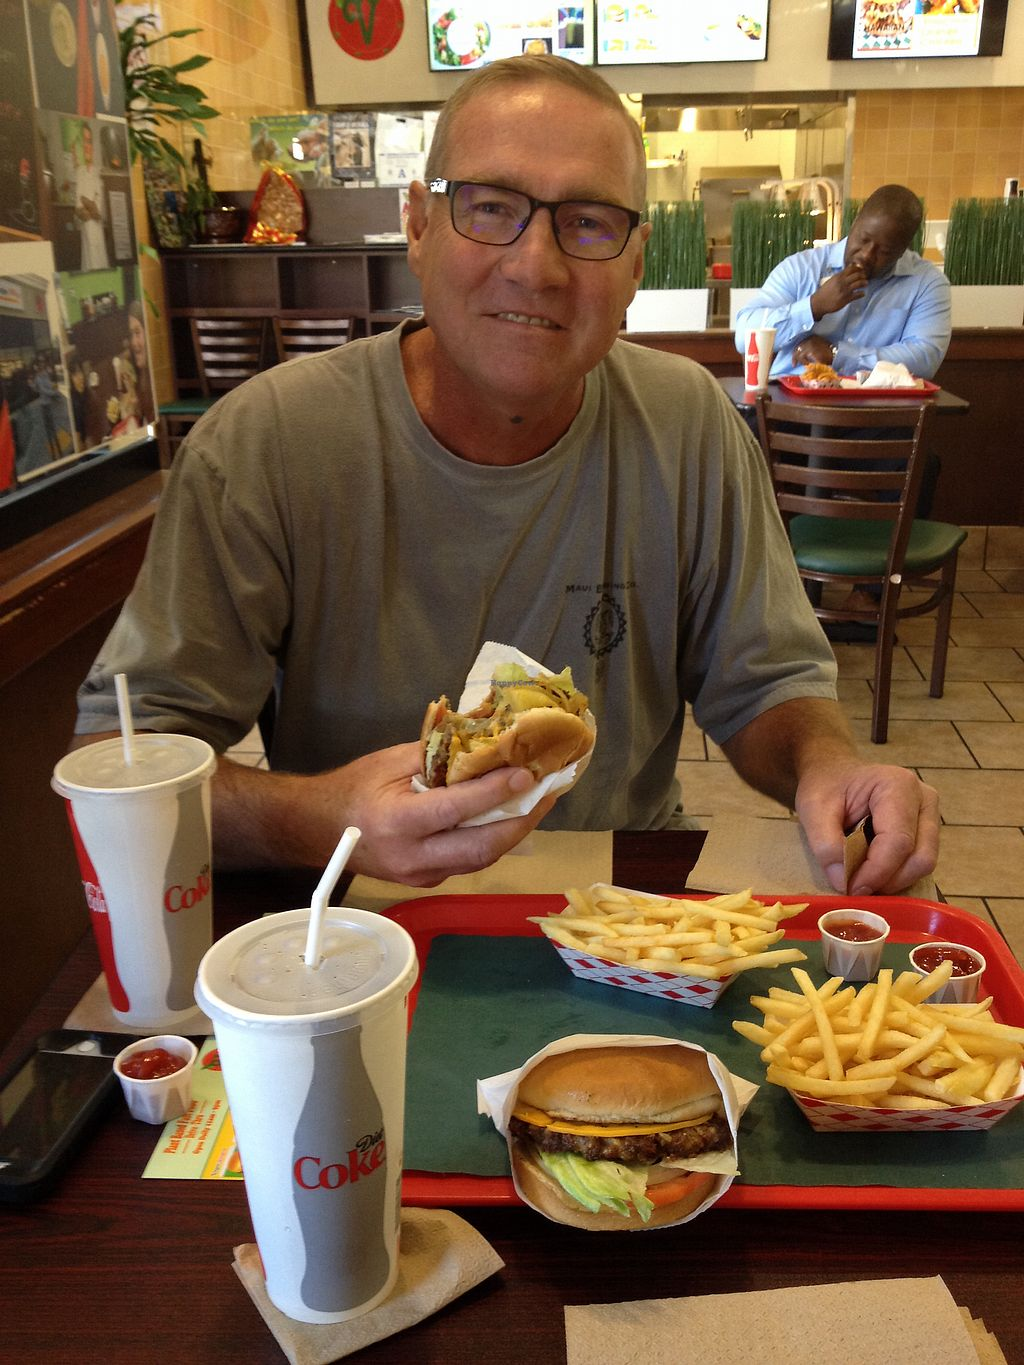 """Photo of VegeWay - S Jones  by <a href=""""/members/profile/Kaylaveggin"""">Kaylaveggin</a> <br/>Enjoying our Hawaiian and Burger Meal combos! <br/> October 20, 2017  - <a href='/contact/abuse/image/80254/317048'>Report</a>"""